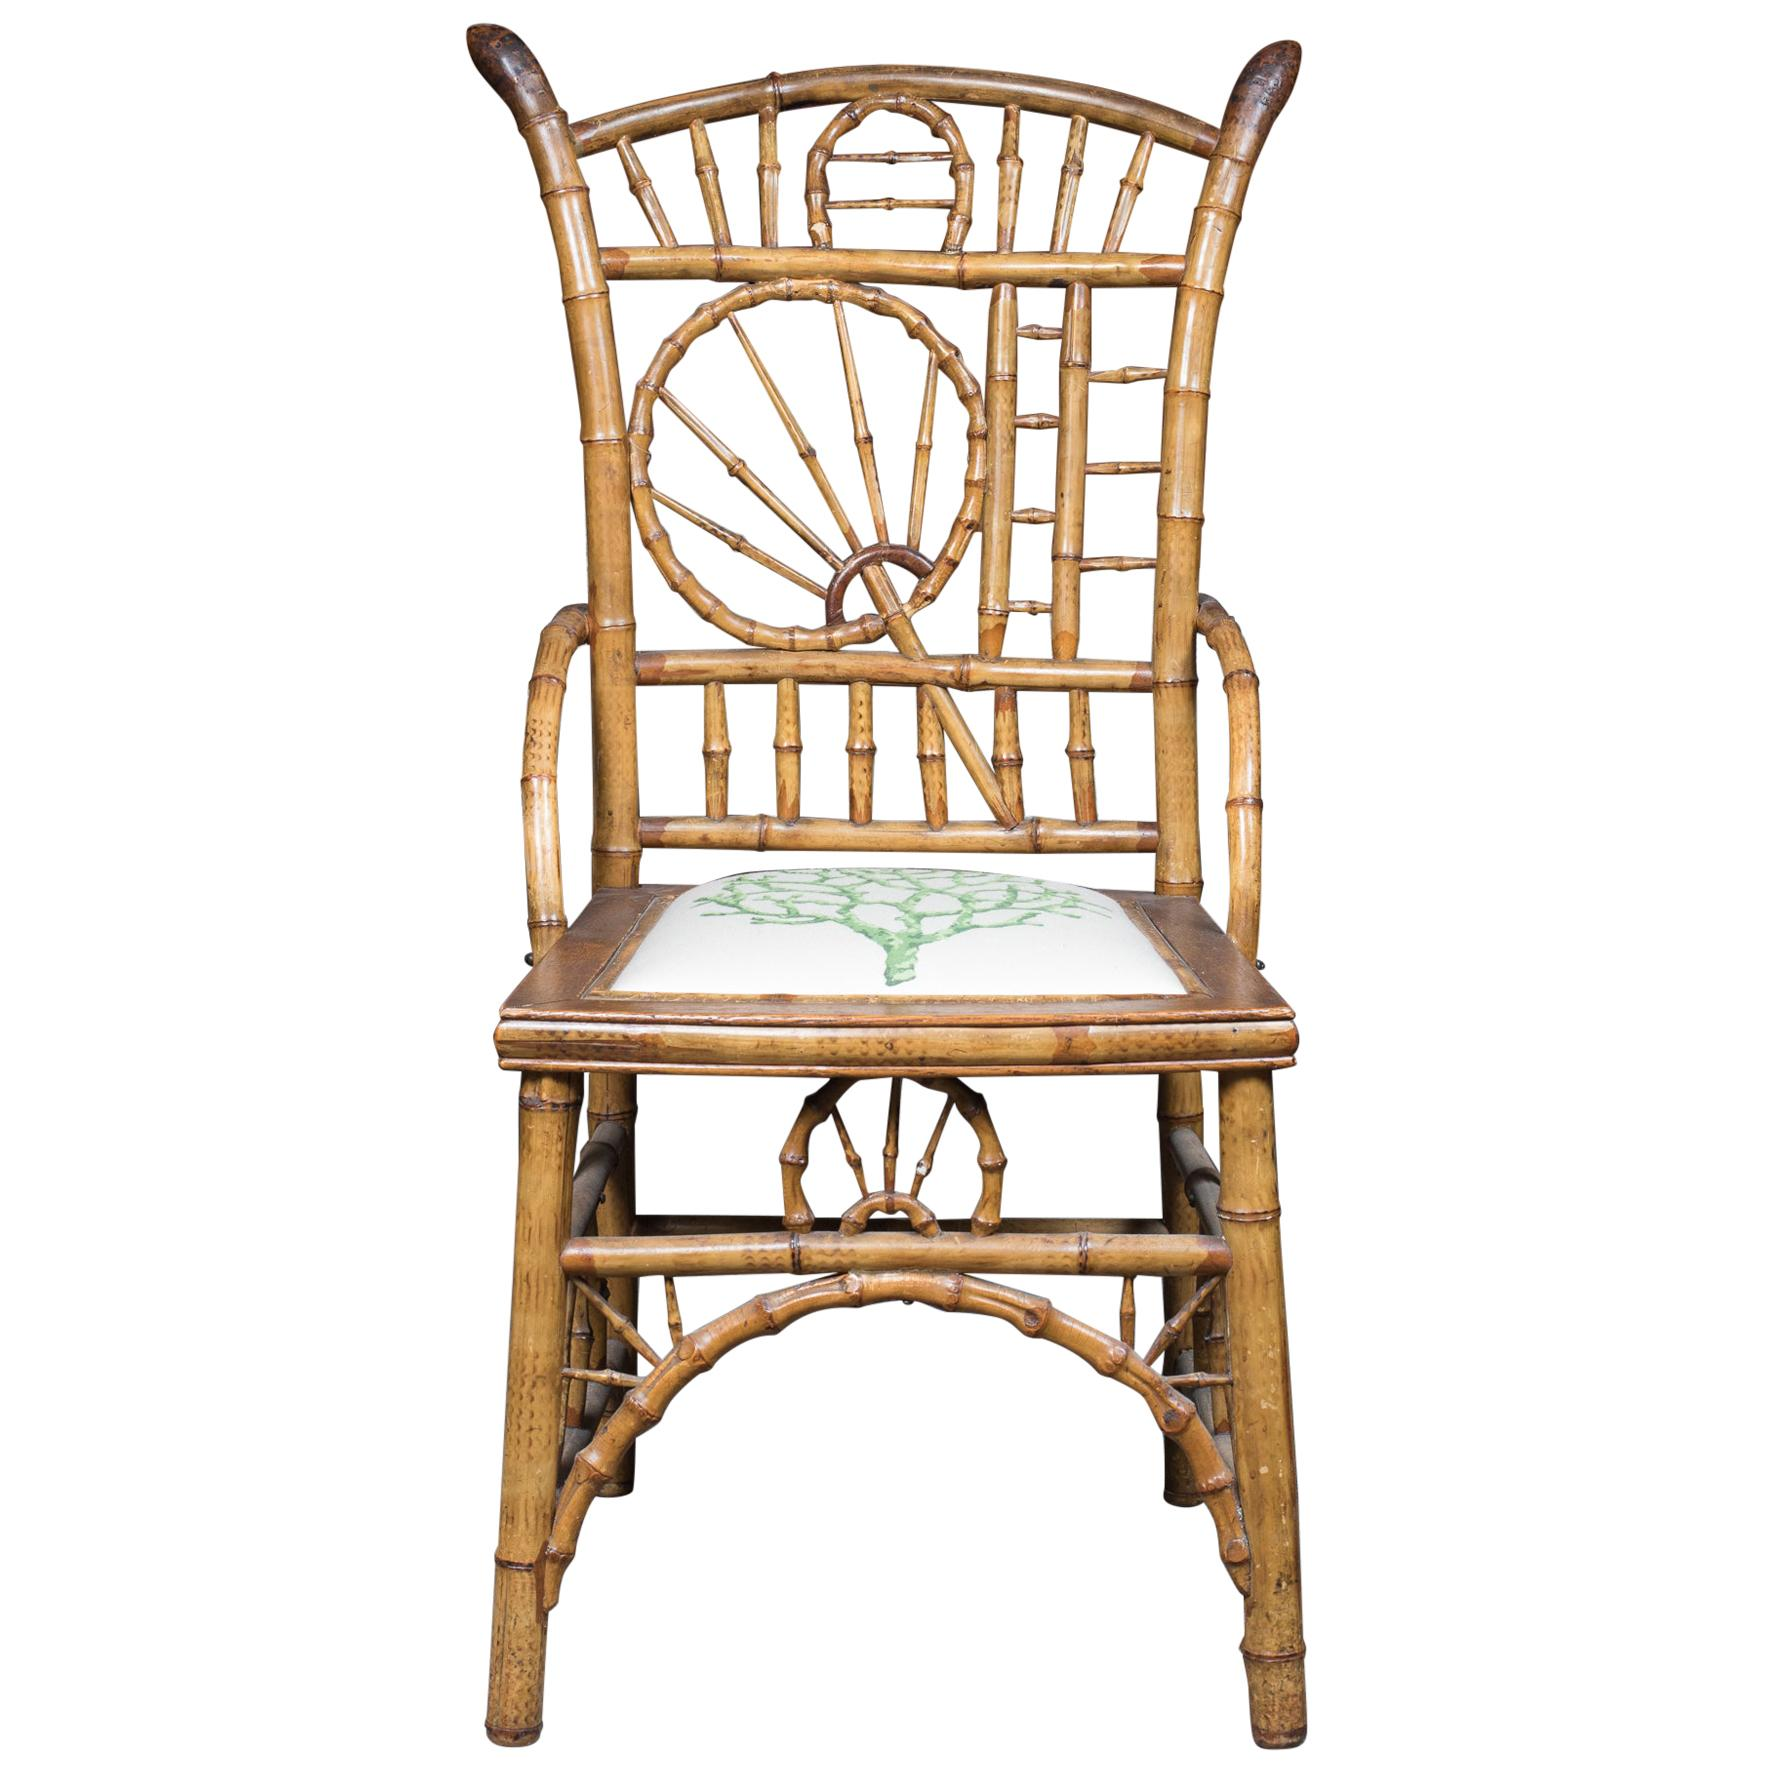 Whimsical bamboo Armchair in the Brighton Pavilion Style